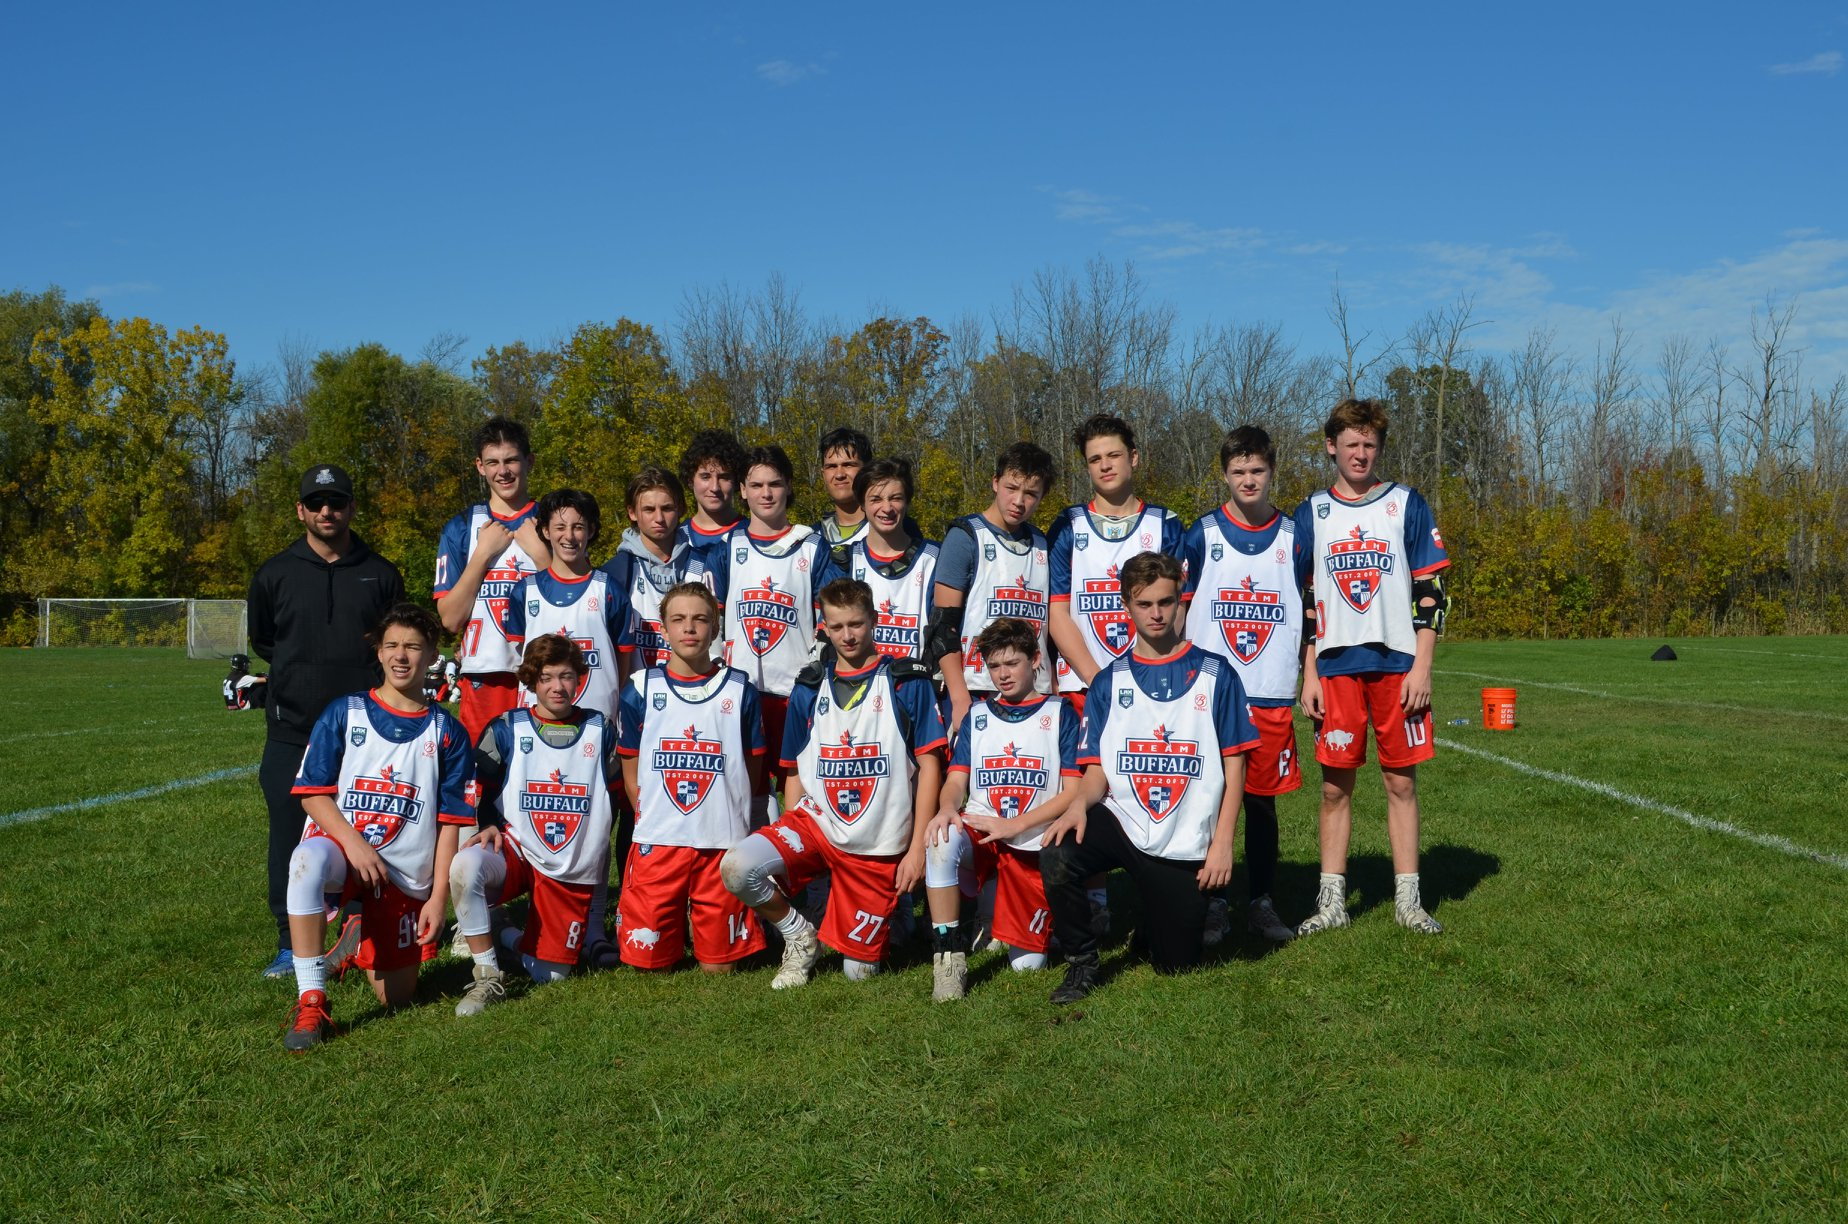 https://buffalolacrosse.com/wp-content/uploads/2020/03/team-buffalo.jpg